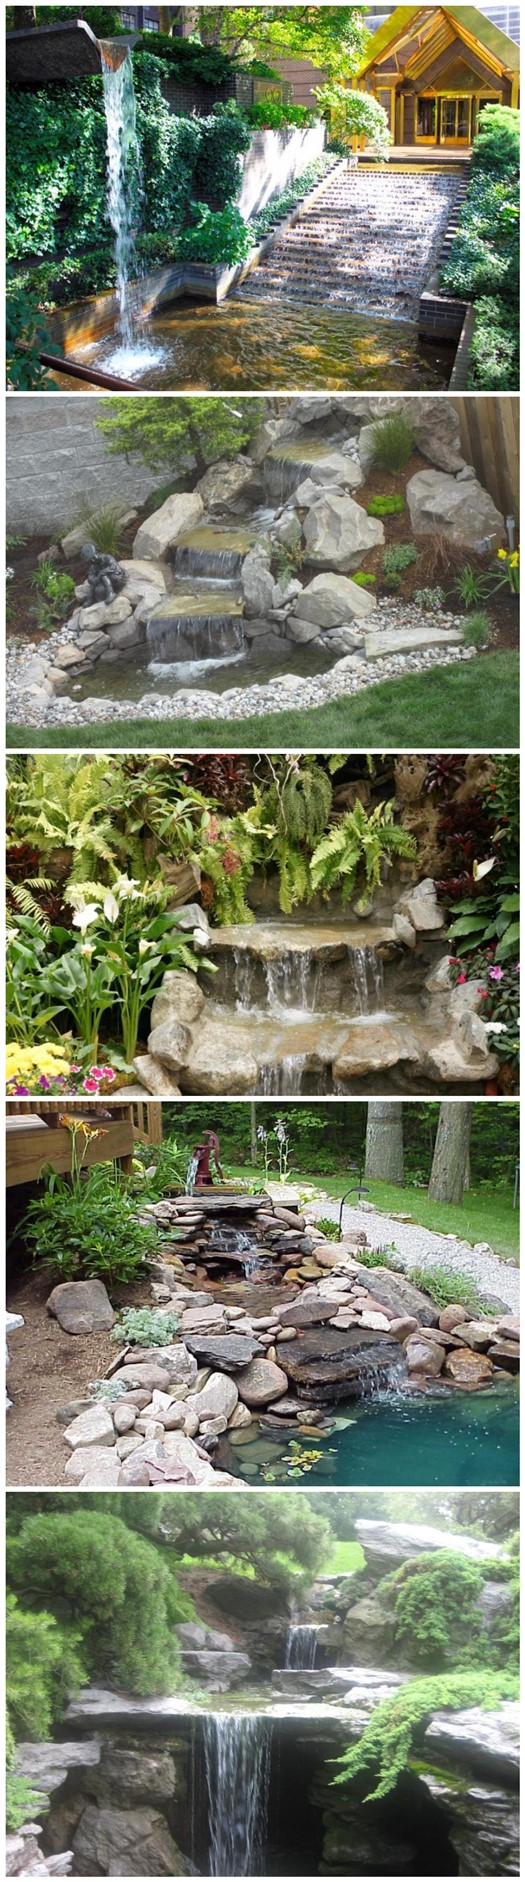 How to build a garden waterfall pond 3 diy tag for Building a fountain pond